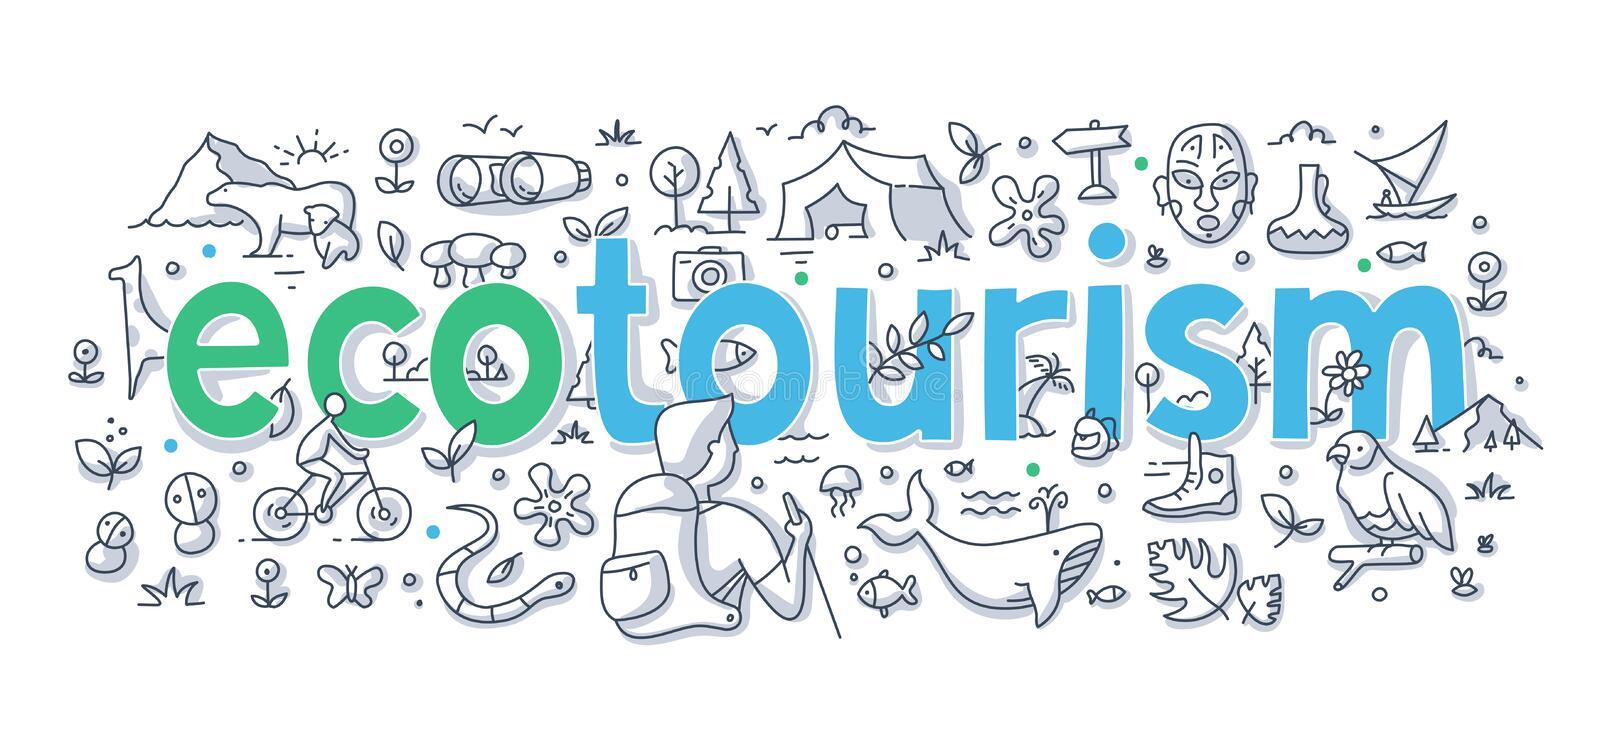 Ecotourism Word Doodle Concept. Ecotourism, responsible traveling abstract illustration with hand written word lettering. Doodle concept of low-impact tourism stock illustration